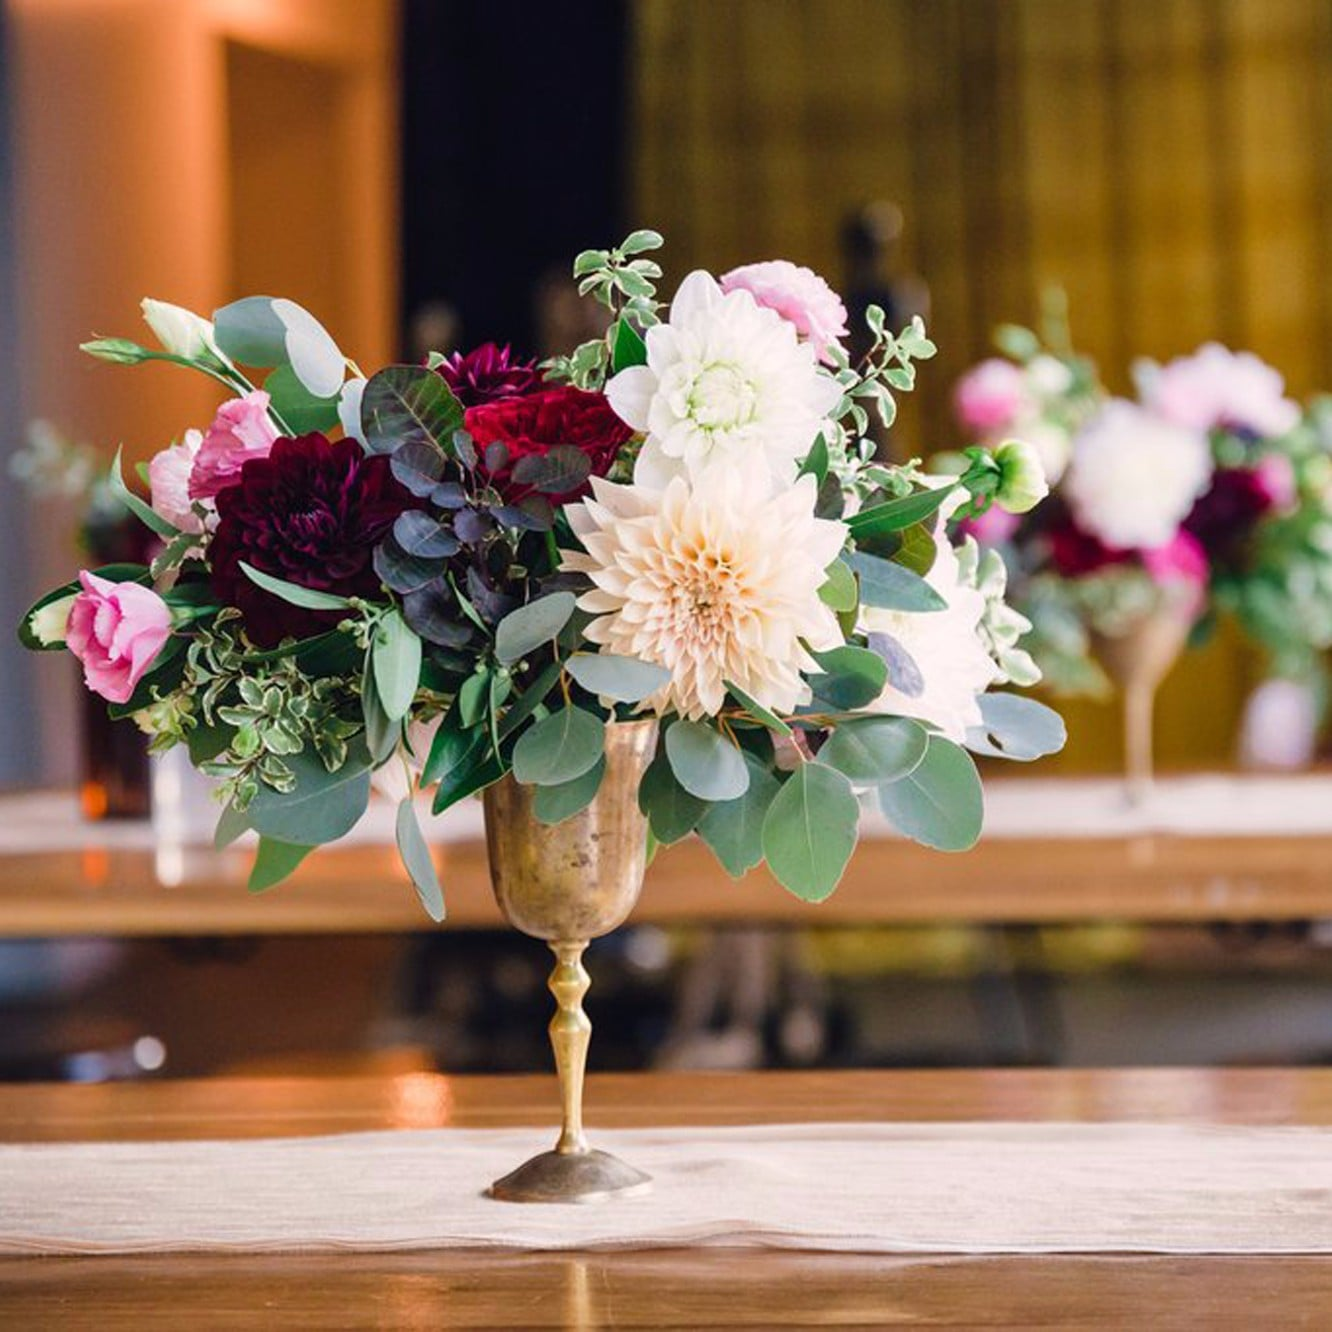 Fall flowers for weddings popsugar love sex junglespirit Choice Image